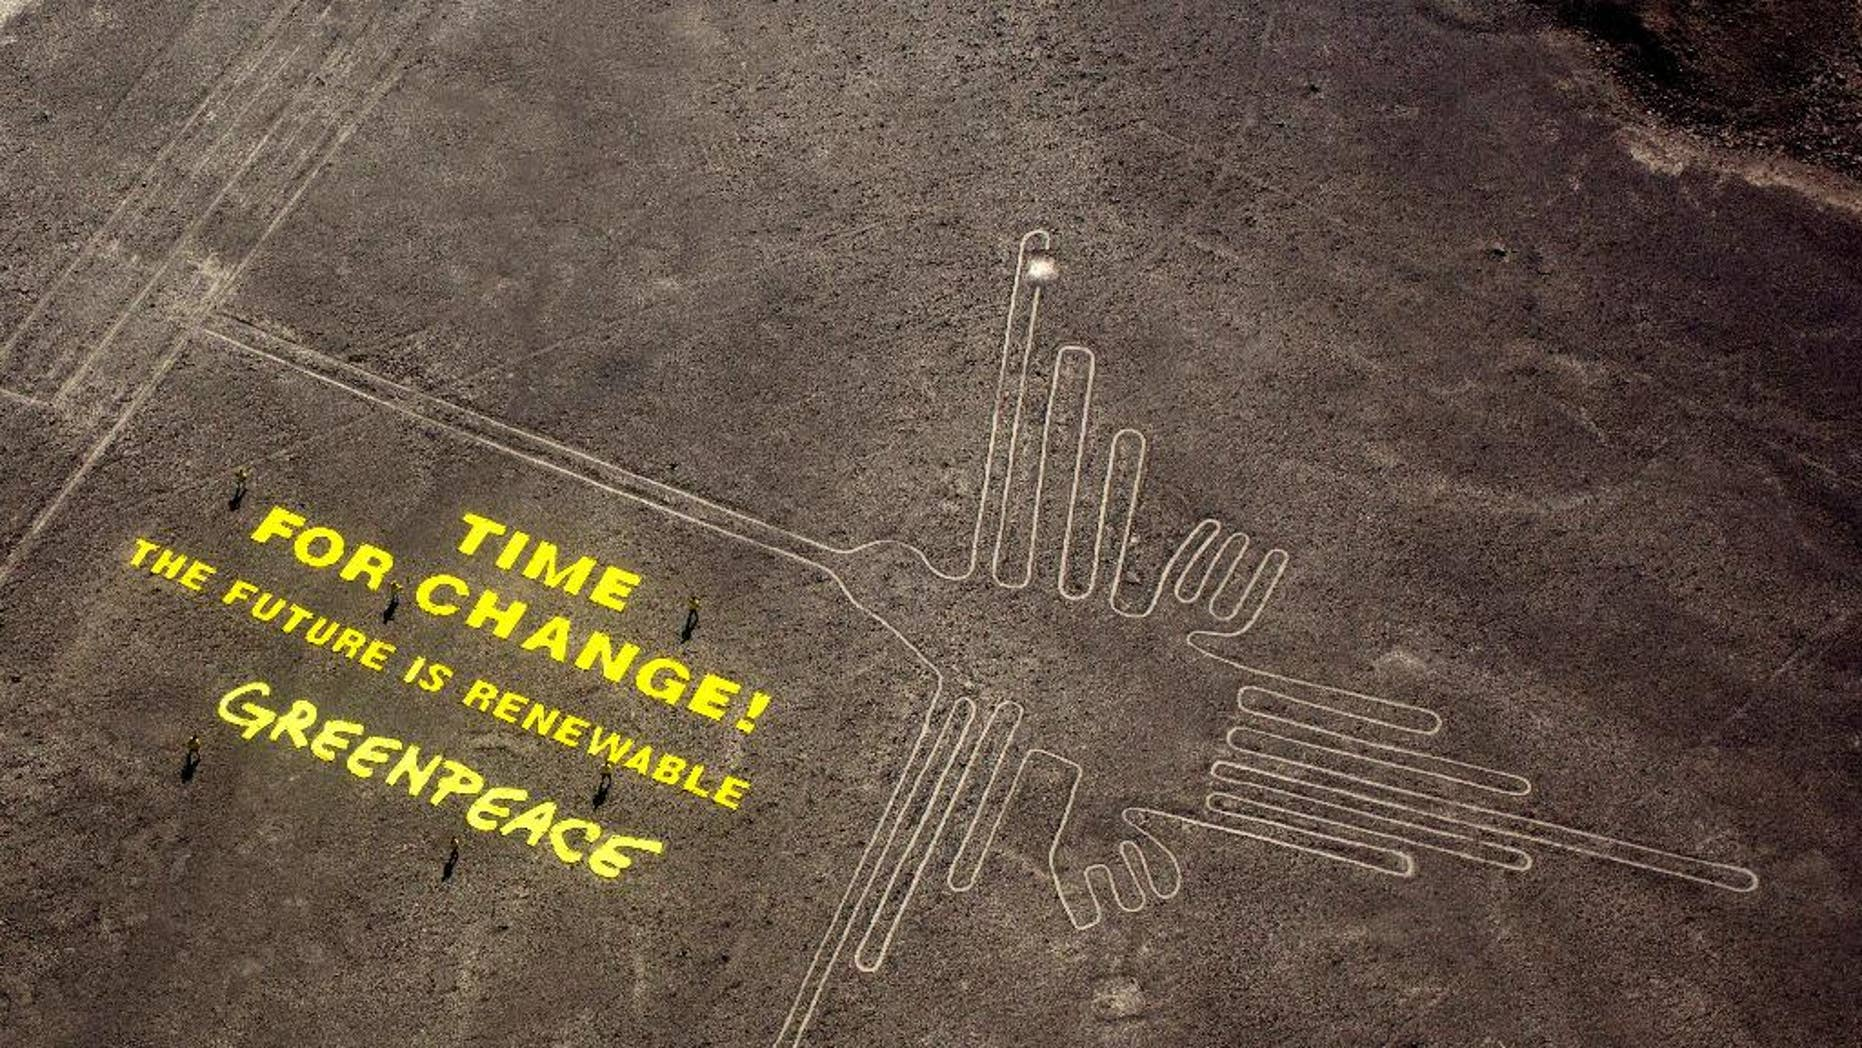 """FILE - In this Dec. 8, 2014 file photo, Greenpeace activists stand next to large letters that spell out """"Time for Change: The Future is Renewable"""" next to the hummingbird geoglyph in Nazca, Peru. Greenpeace said Tuesday, Jan. 20, 2015 it has given prosecutors the names of four people involved in this protest for renewable energy at the country's famed Nazca Lines archaeological site, an action that sparked widespread outrage in Peru. In naming the activists, the group urged prosecutors to drop legal proceedings against two journalists who covered the Dec. 8 event, Associated Press photographer Rodrigo Abd and Reuters video journalist Herbert Villaraga. (AP Photo/Rodrigo Abd, File)"""